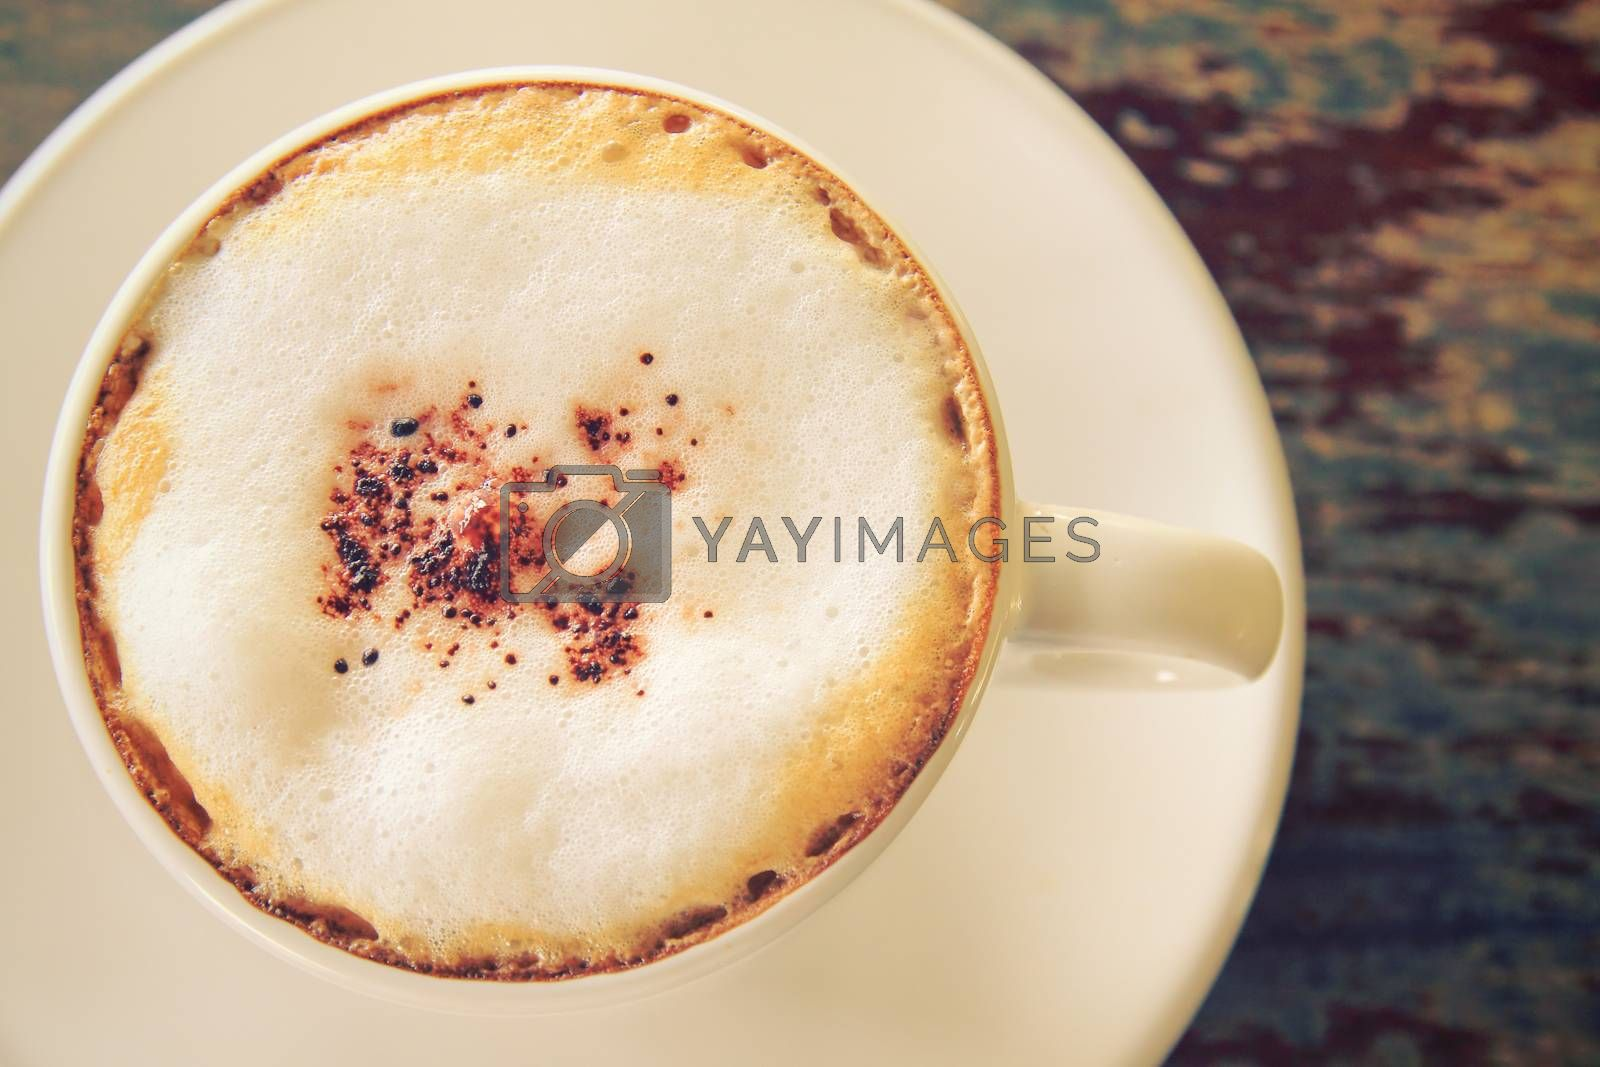 Cappuccino or latte coffee on table with retro filter effect